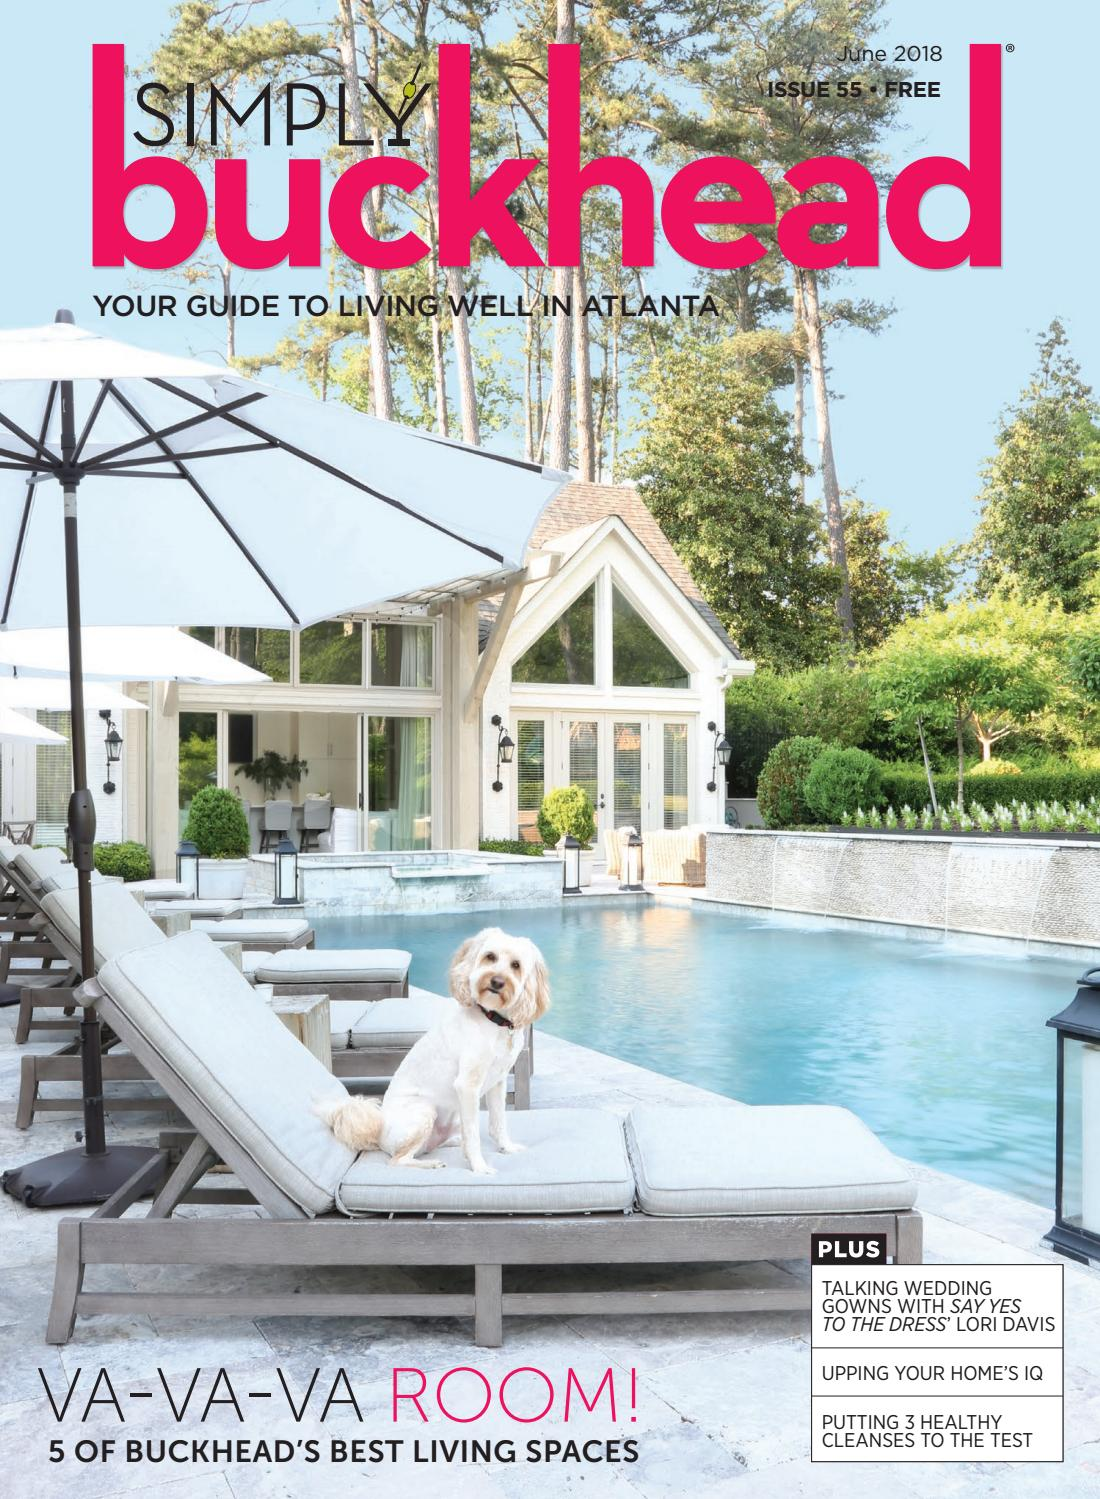 Simply Buckhead June 2018 by Simply Buckhead - issuu